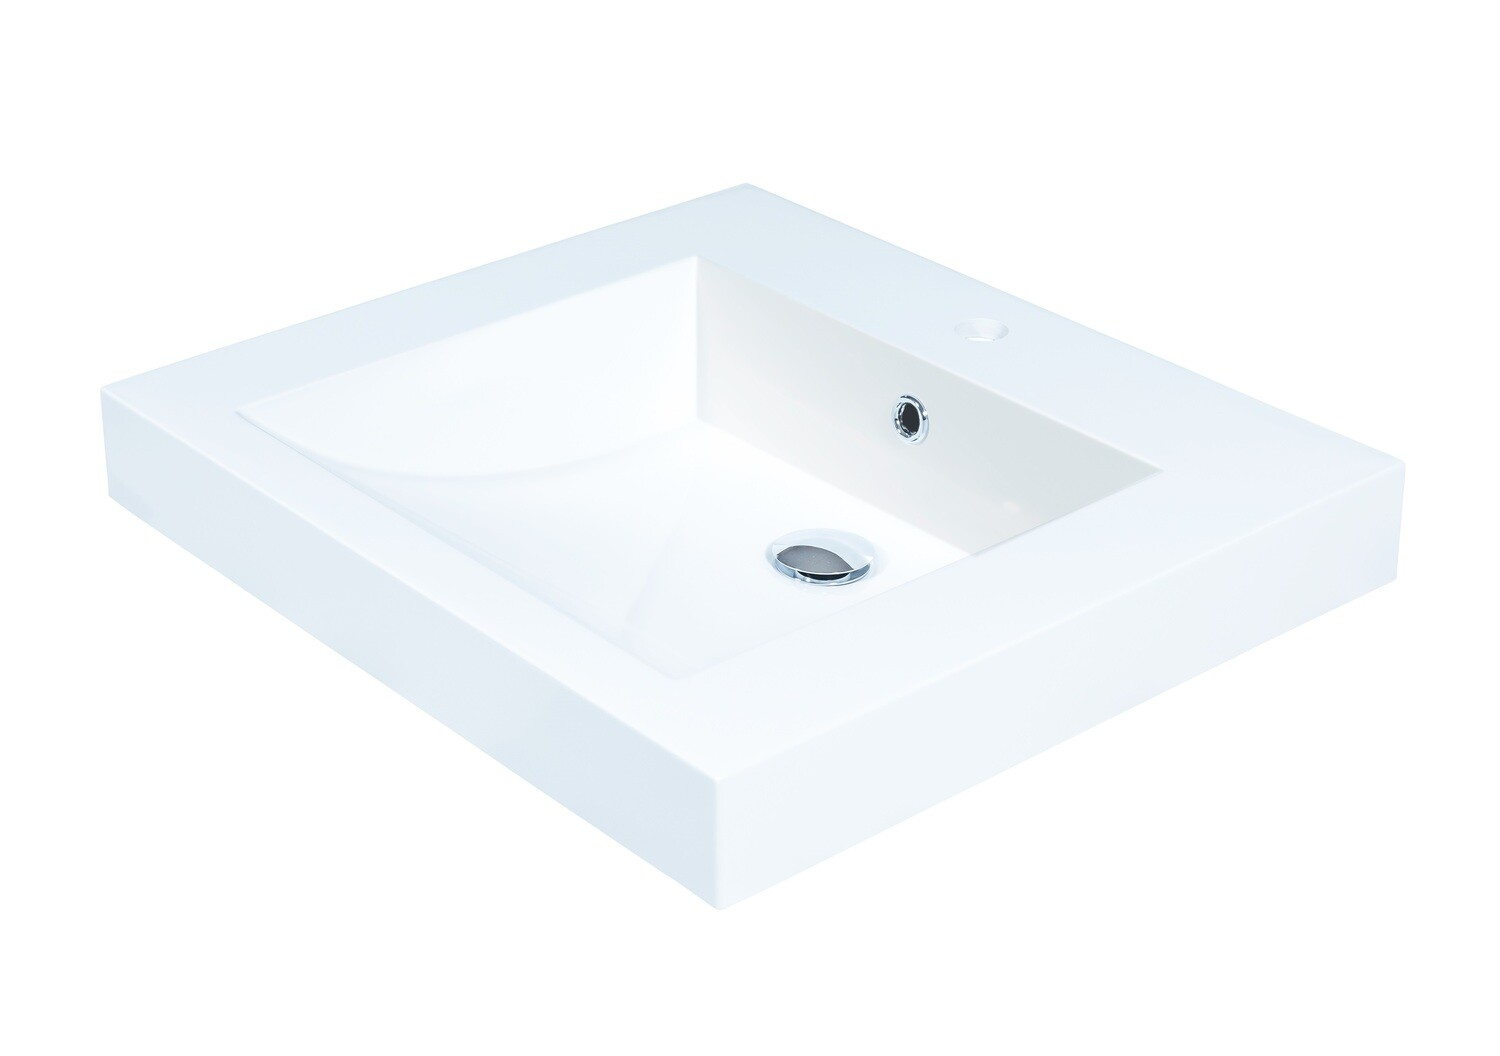 Plan-vasque Spazio 60 cm